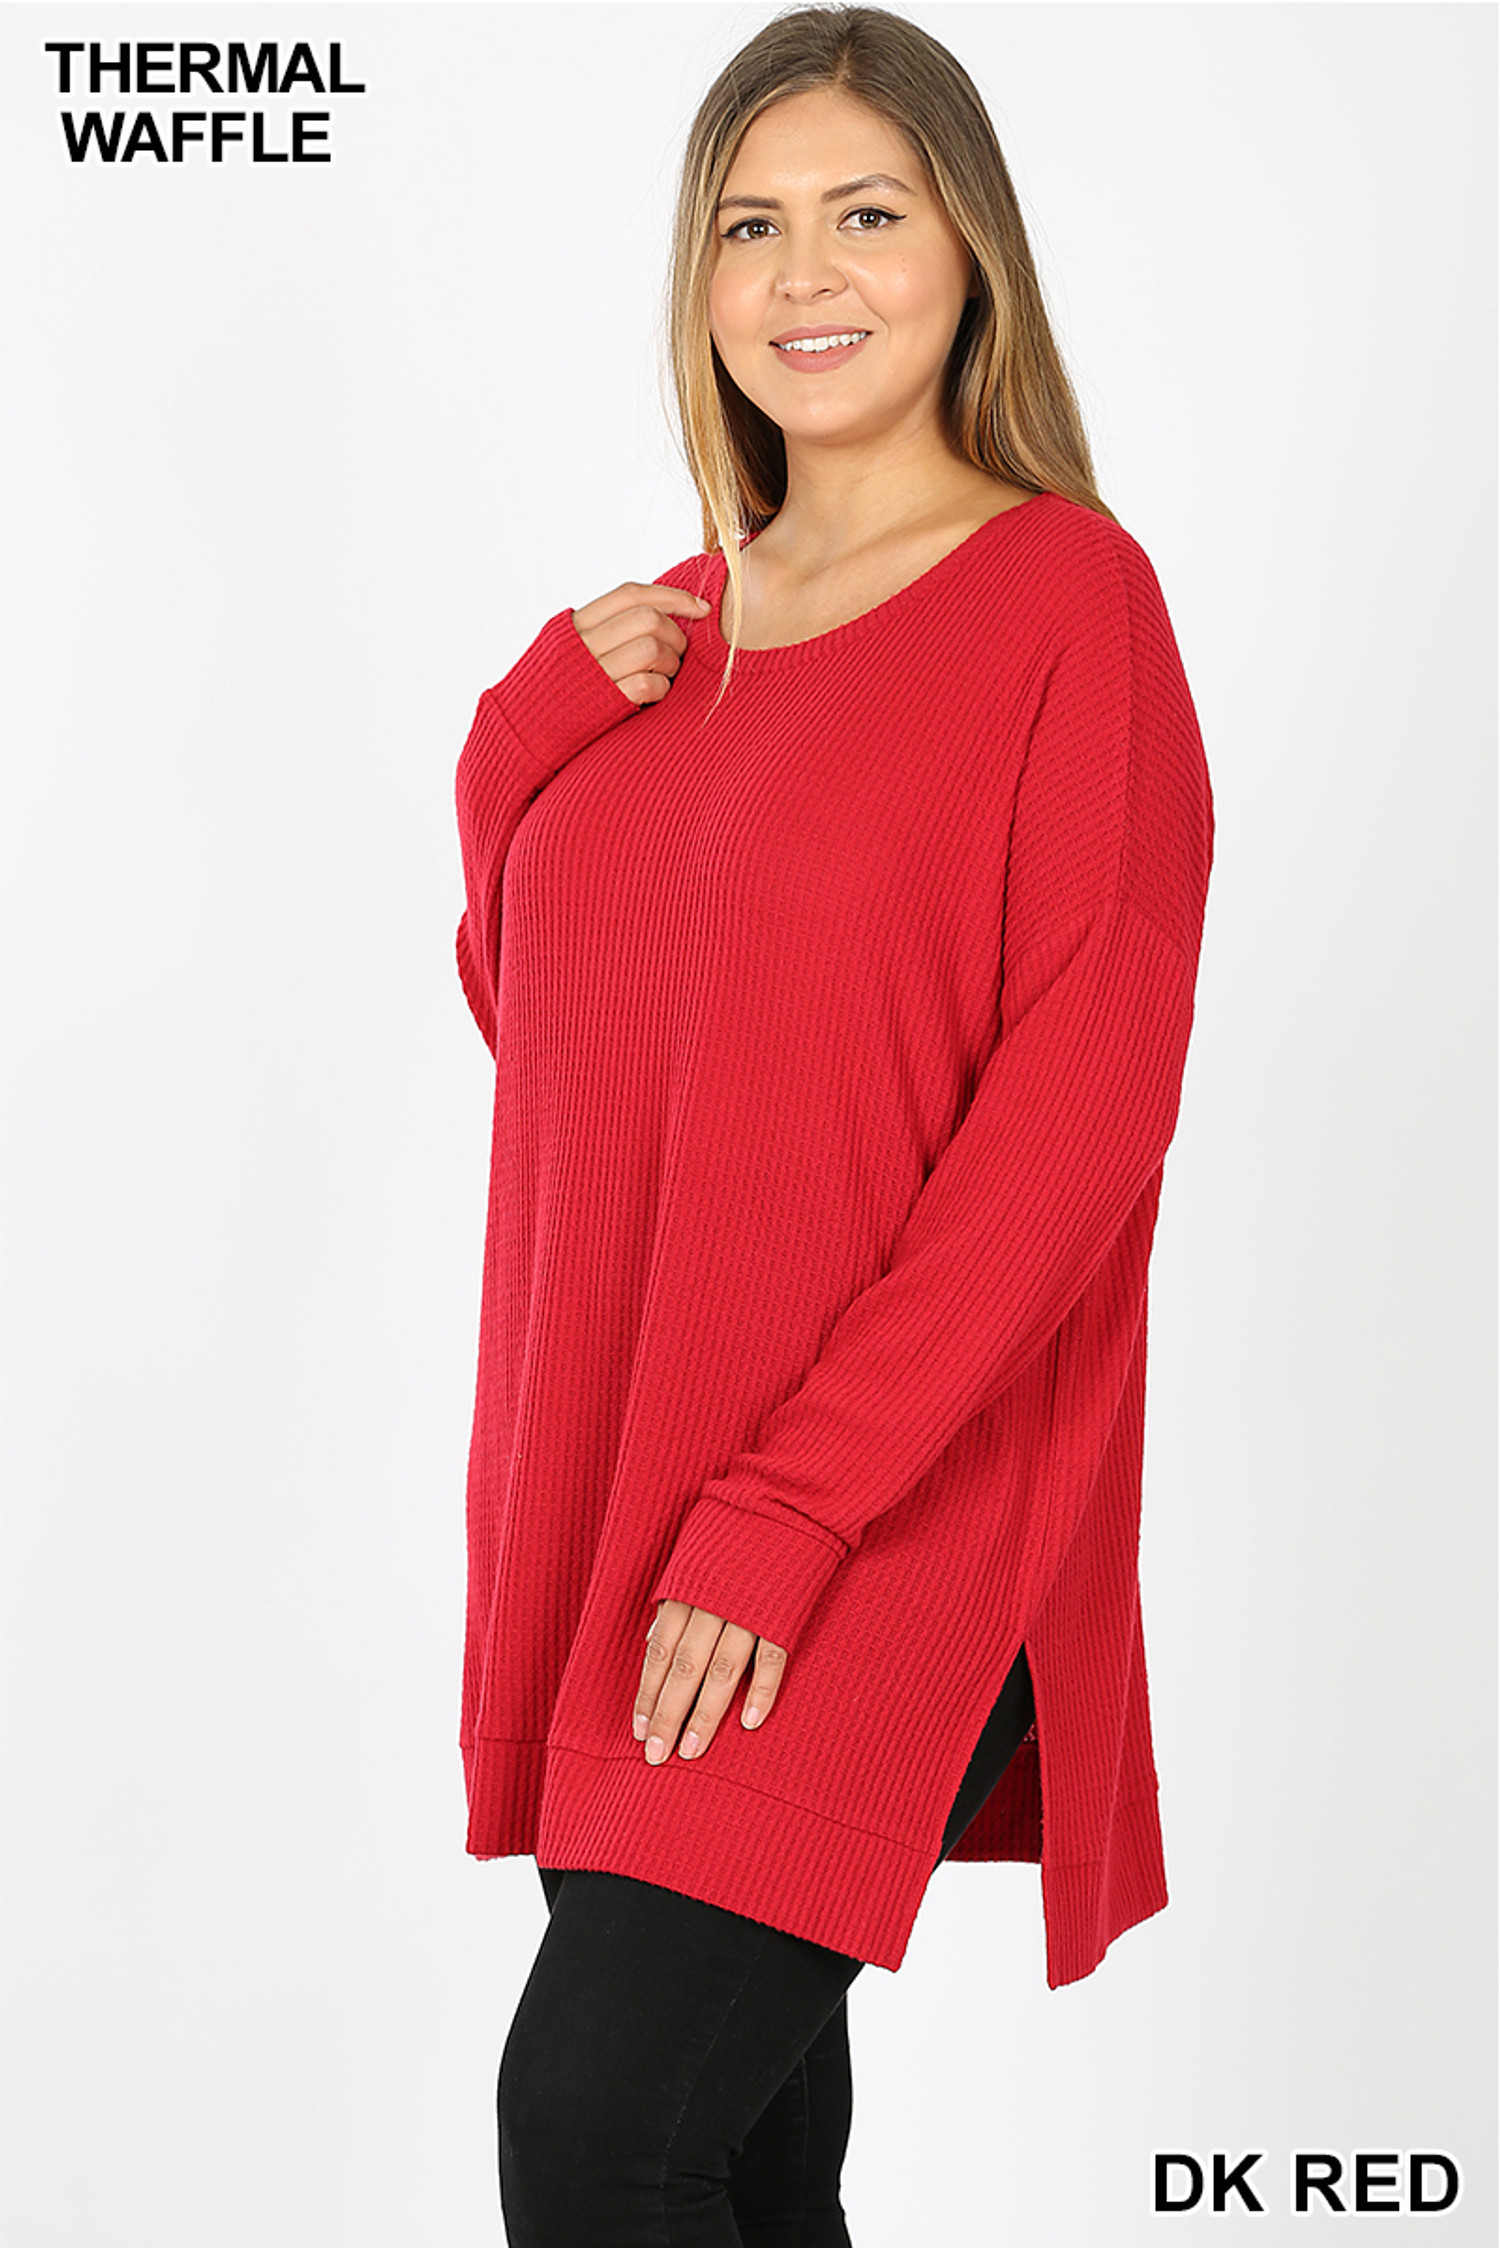 Left side image of  Dk Red Brushed Thermal Waffle Knit Round Neck Plus Size Sweater